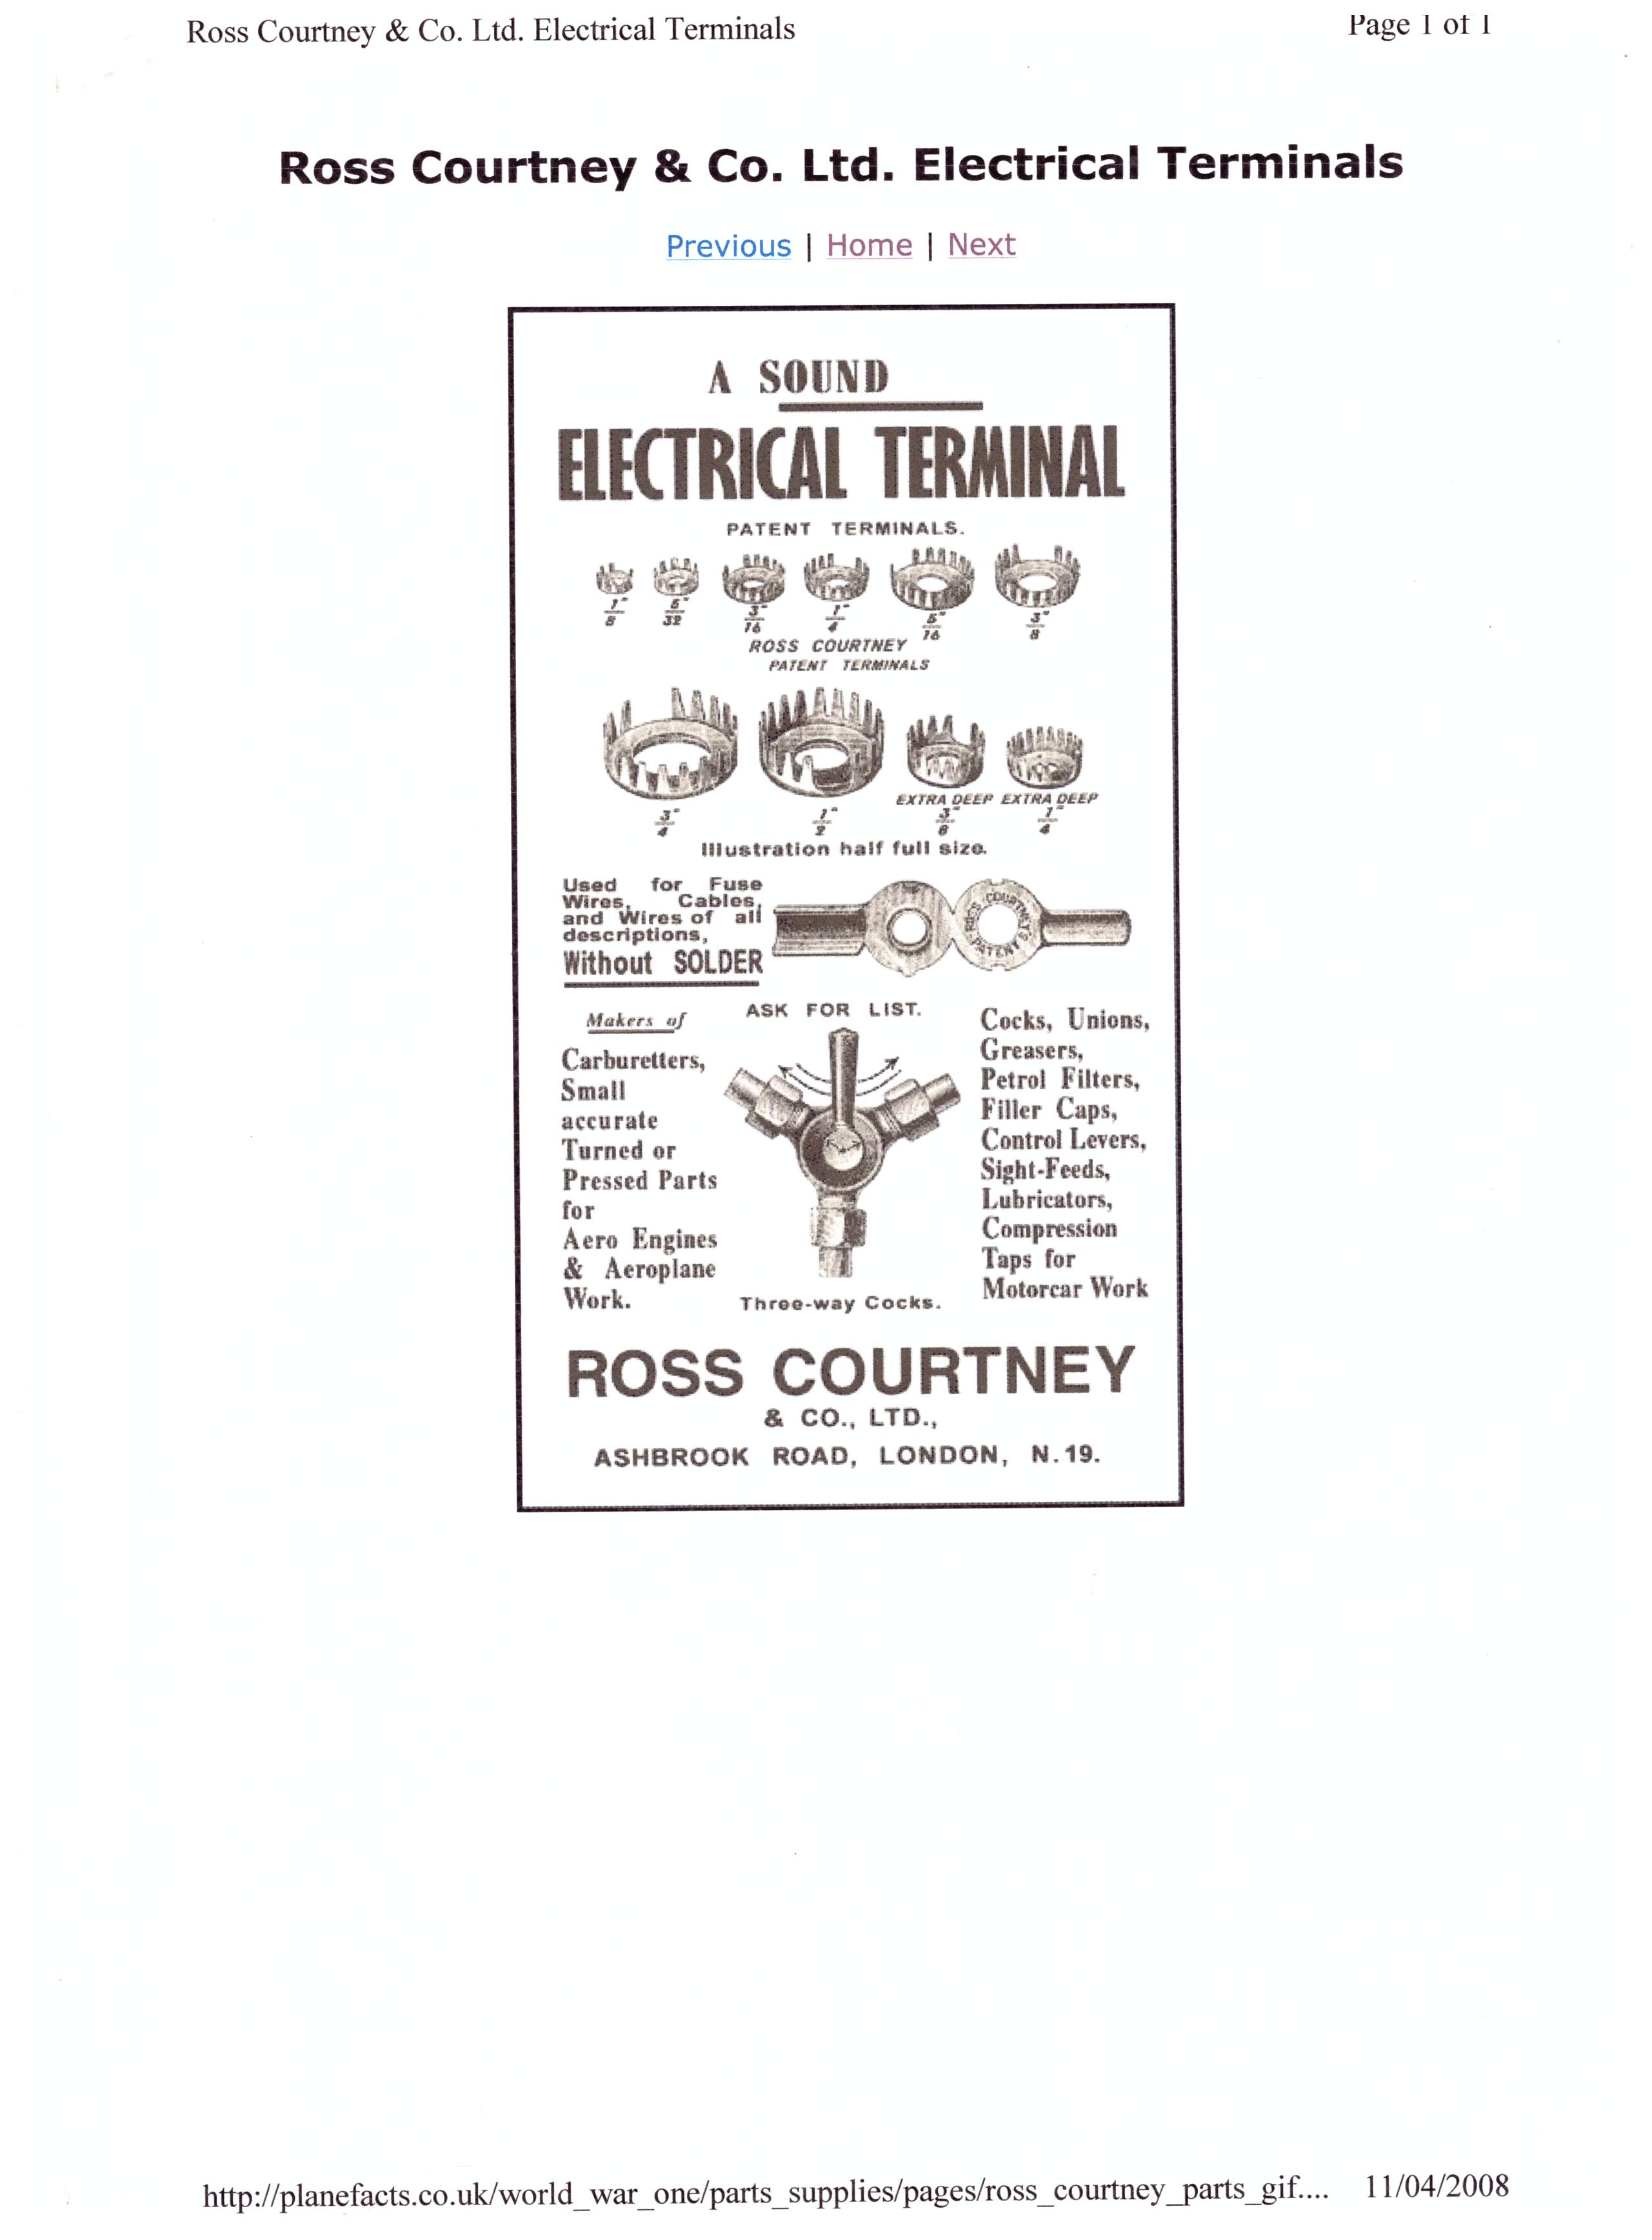 Electric Terminals Connections Technical Antique Automobile Club Wiring Supplies 58b3f3e1a3231 Wiringterminal001thumb1038f73a05cdfb173b970b5f5b702a19